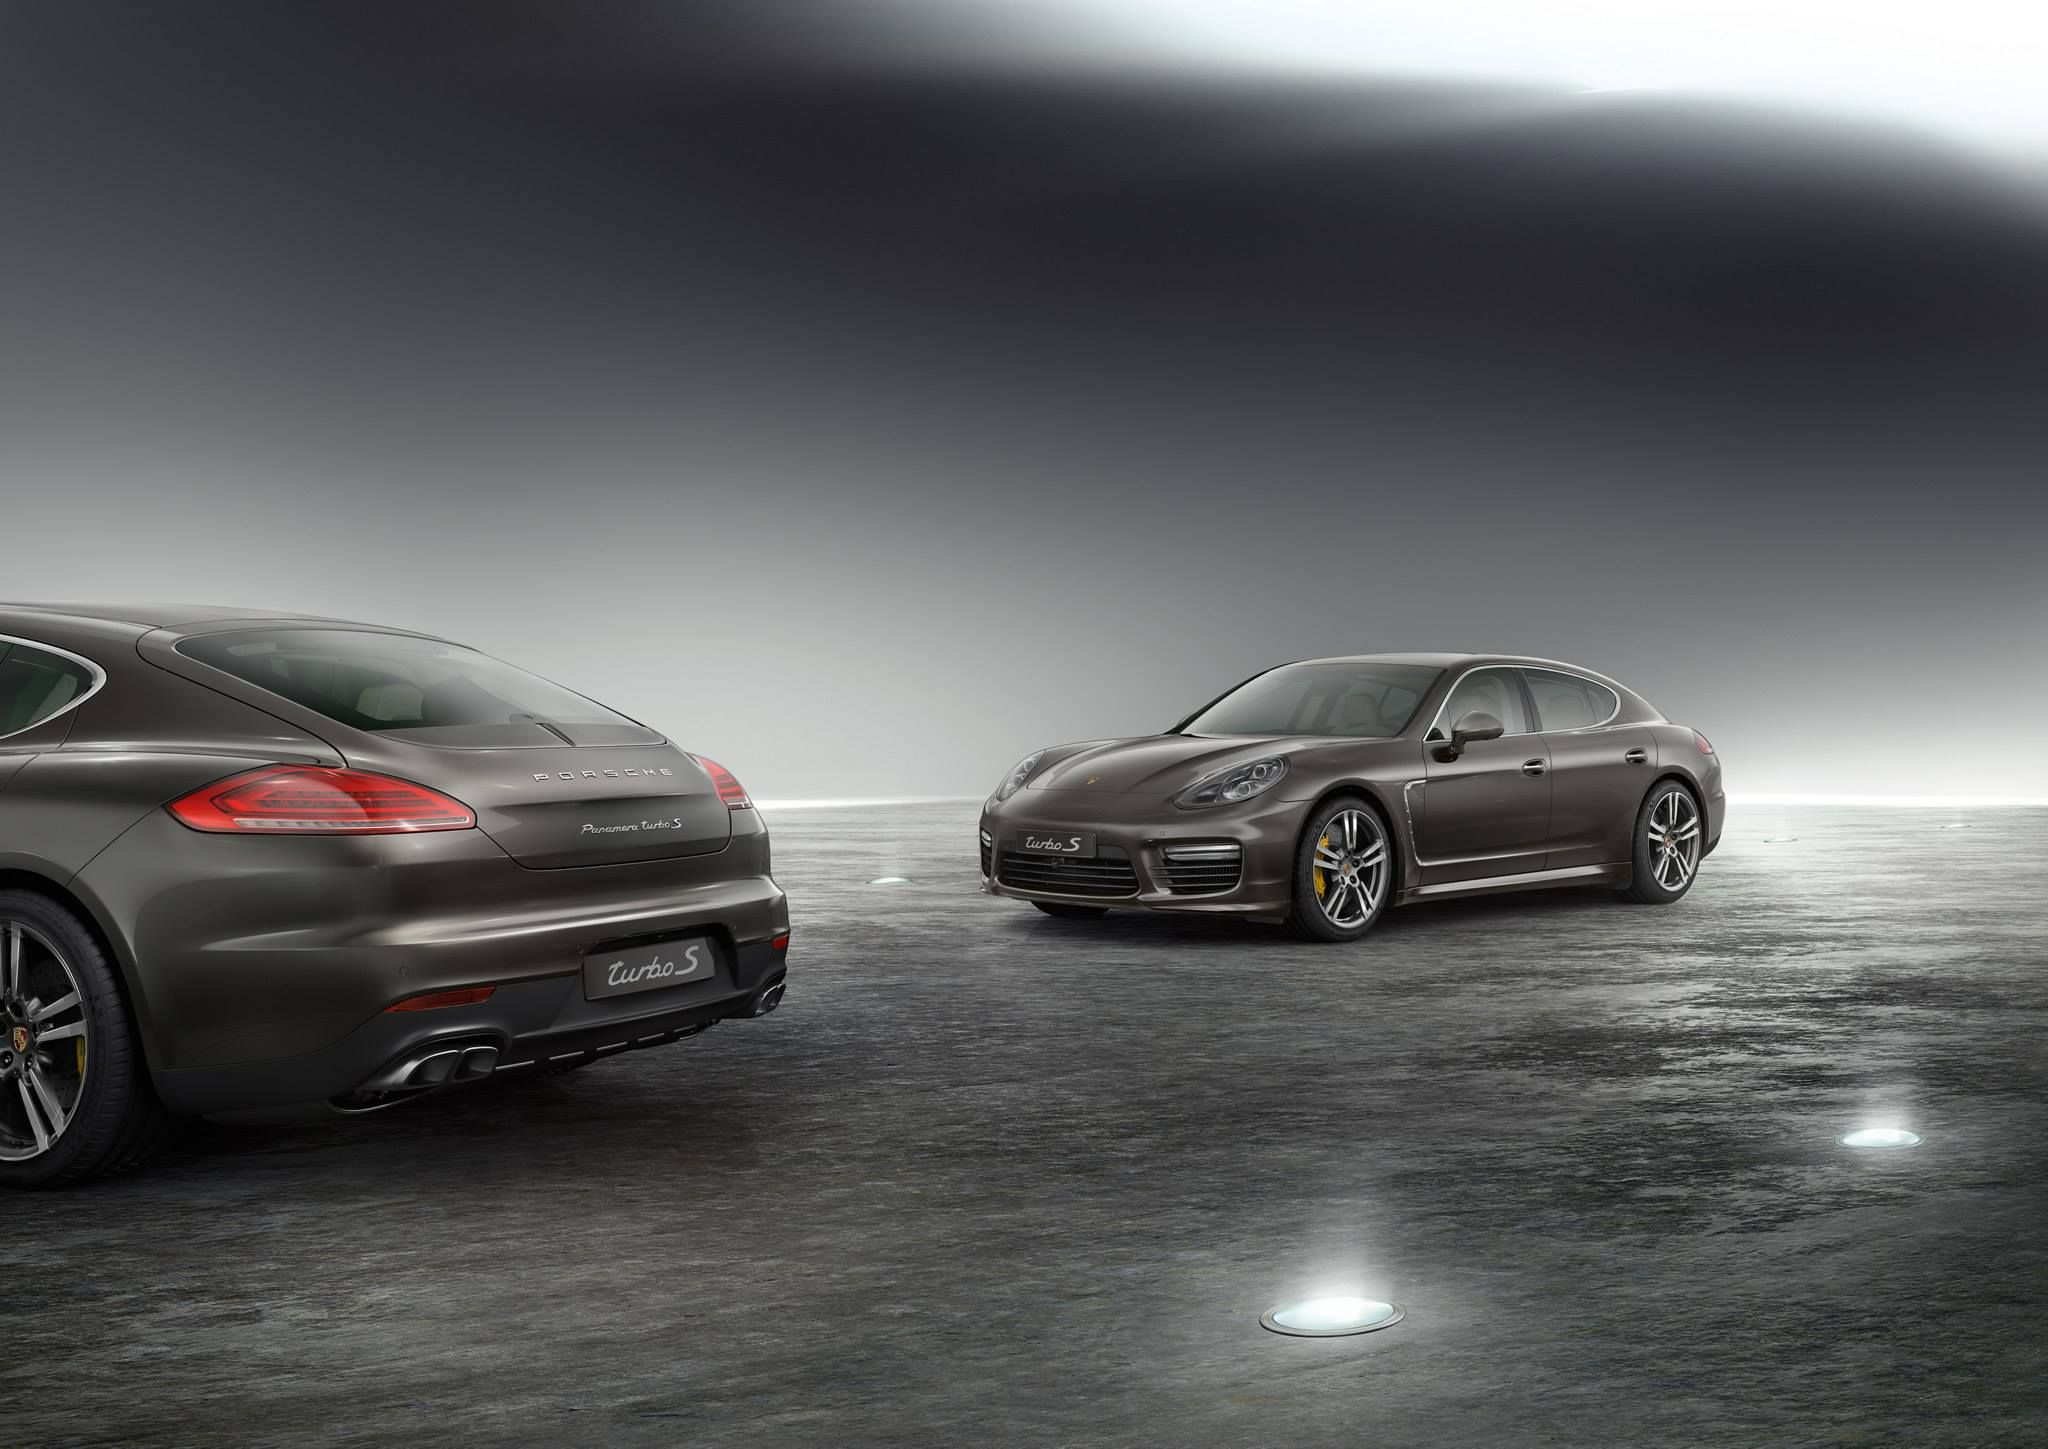 The new Porsche Panamera Turbo S - Focused Power.